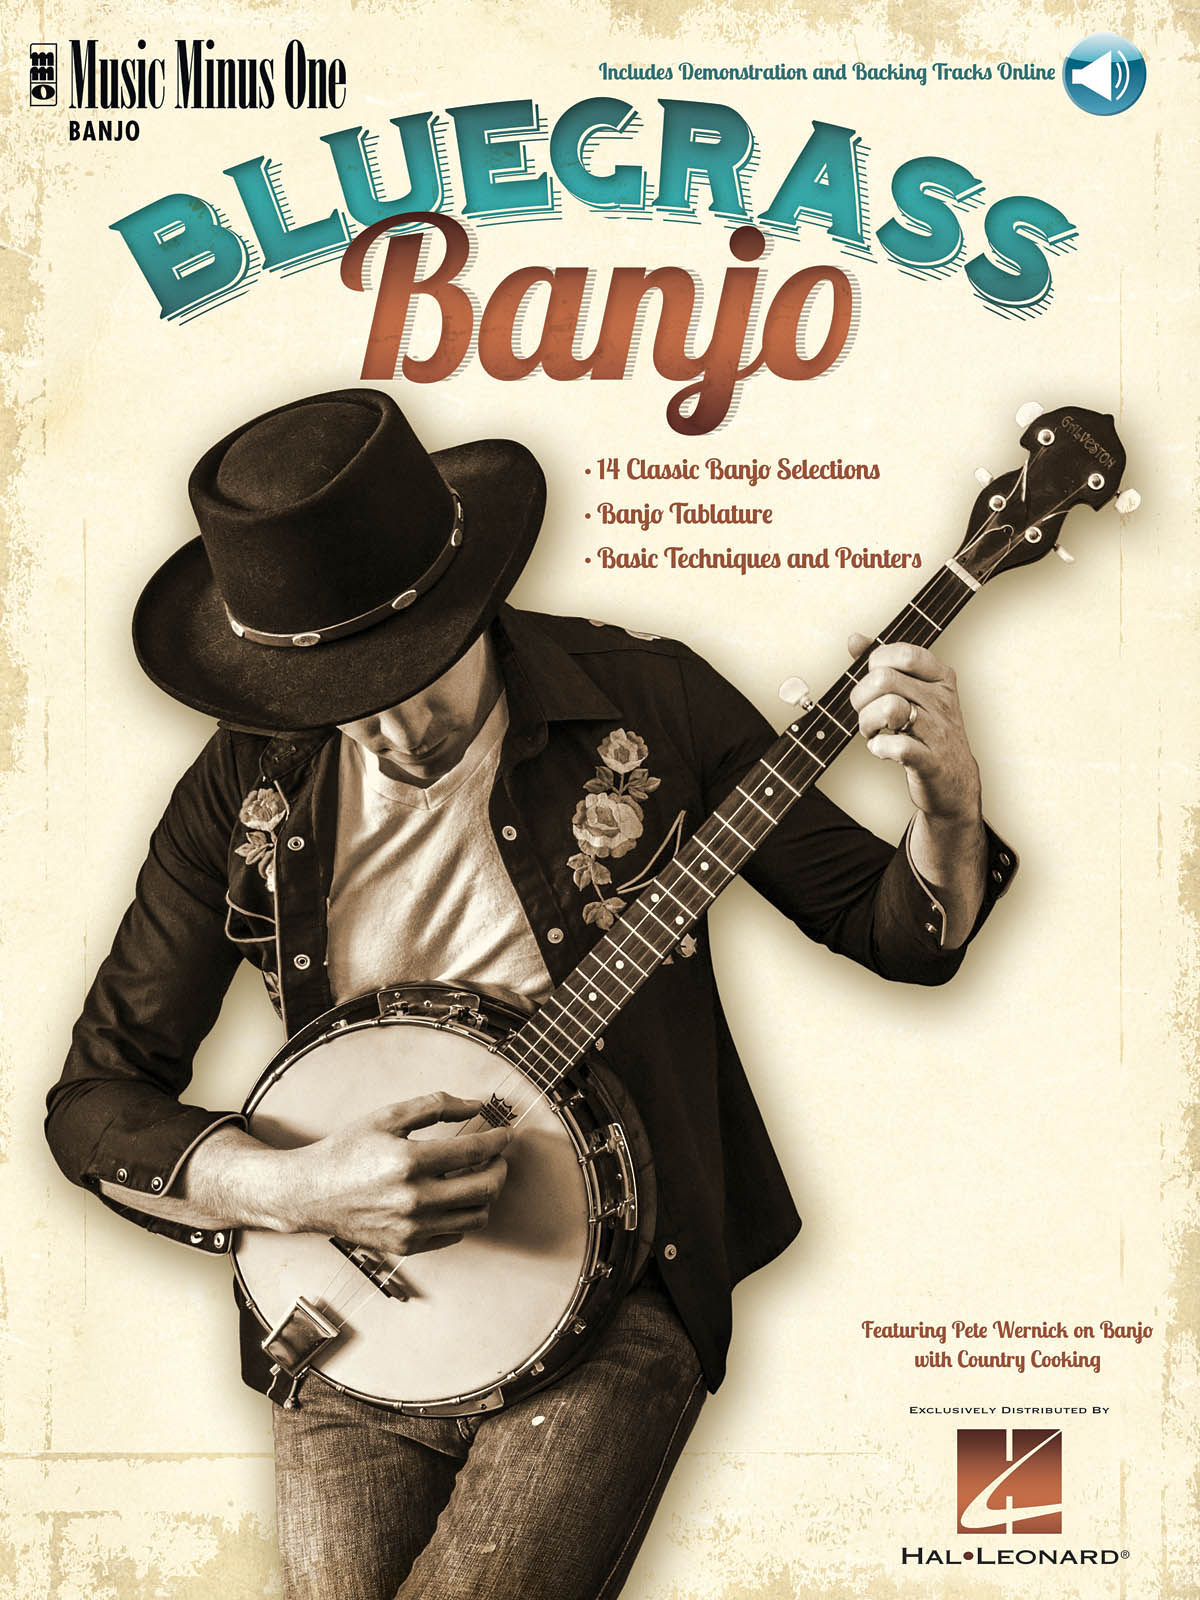 Bluegrass Banjo: Banjo: Instrumental Album